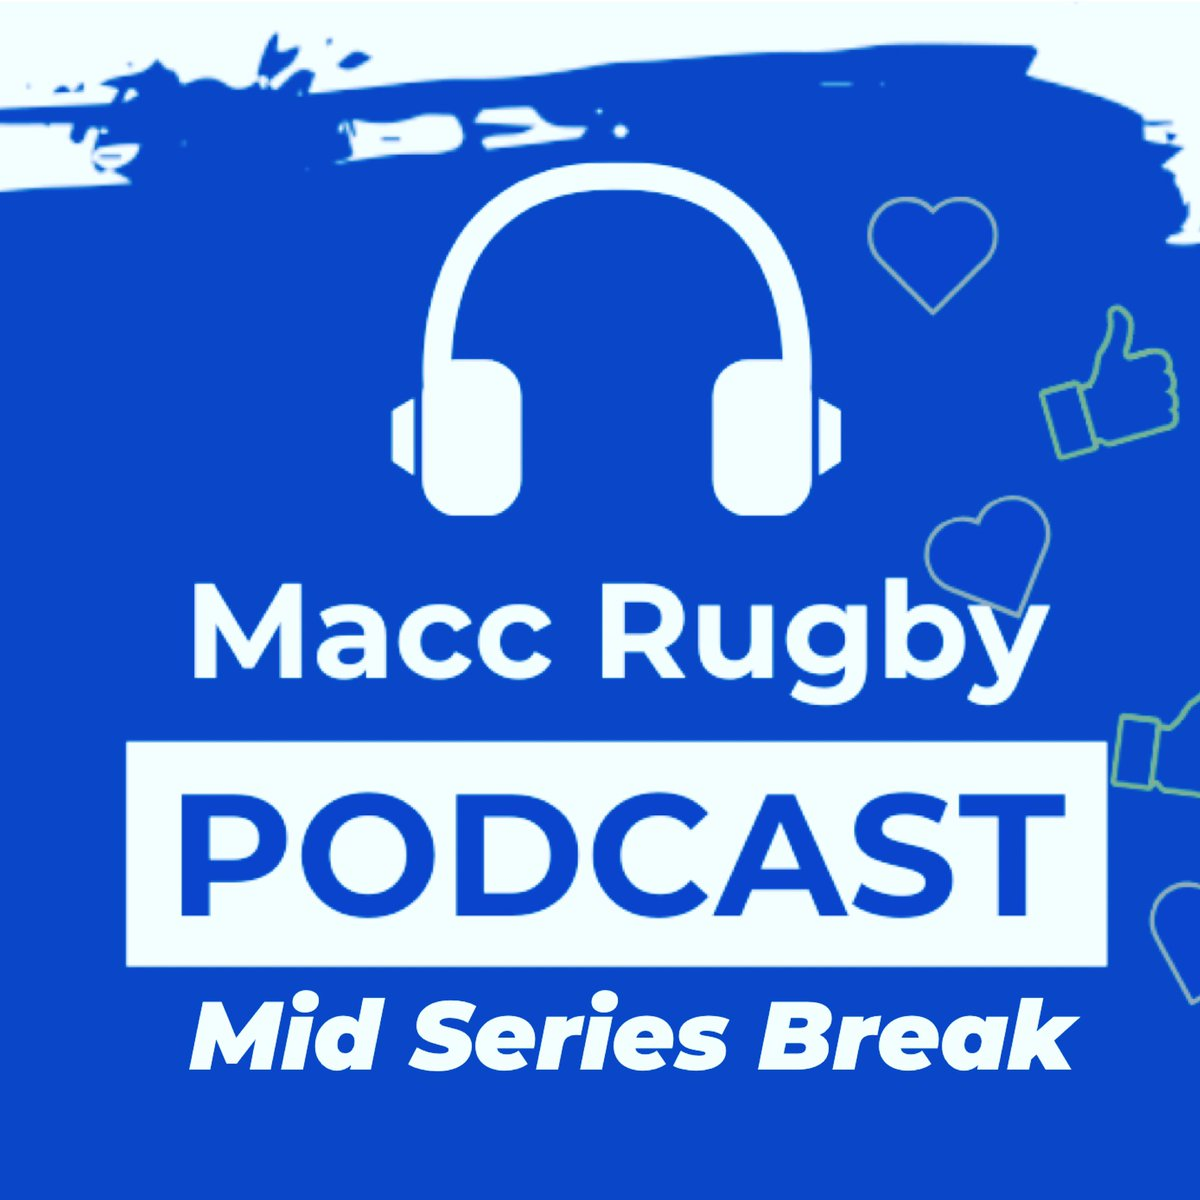 test Twitter Media - POD NEWS! We are having a mid-series break on the #maccrugbypod but we will be back next week when we will be speaking to Tom King about what it's like to come from another club and we discuss adding @MaccRugby 7's to the 7's circuit! https://t.co/X3N3oSviYQ